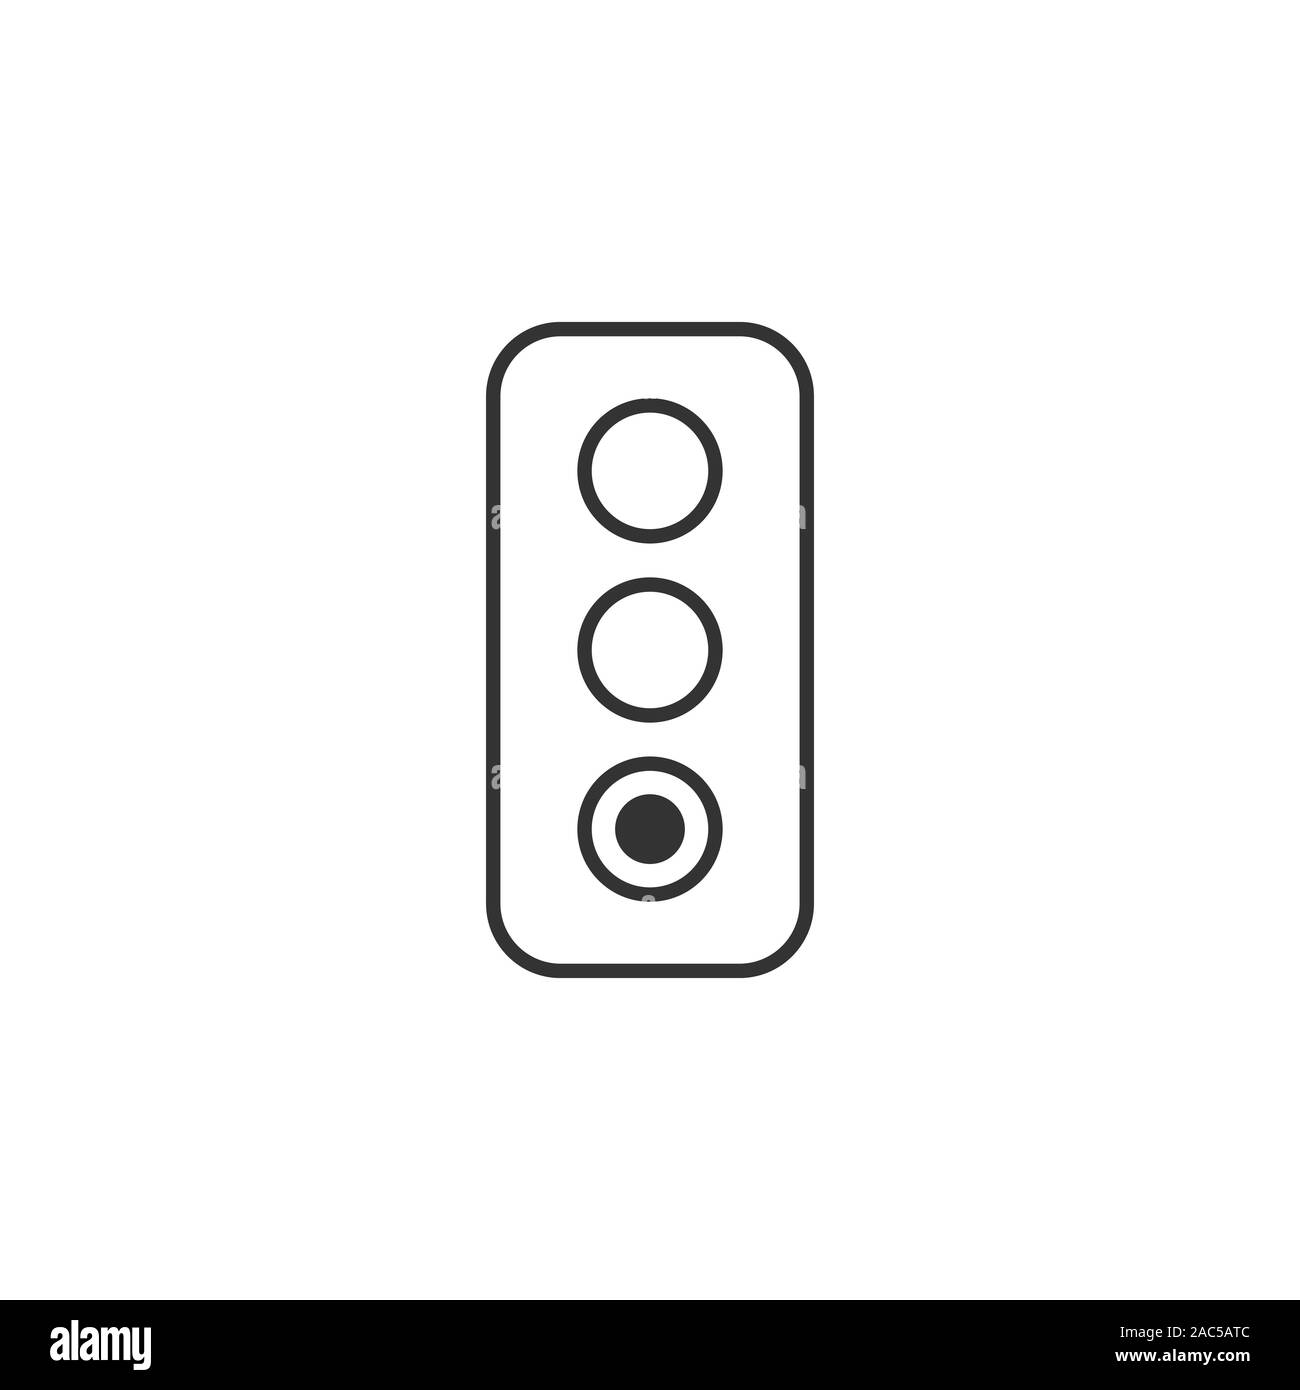 Semaphore icon in flat style. Traffic light vector illustration on white isolated background. Crossroads business concept. Stock Vector